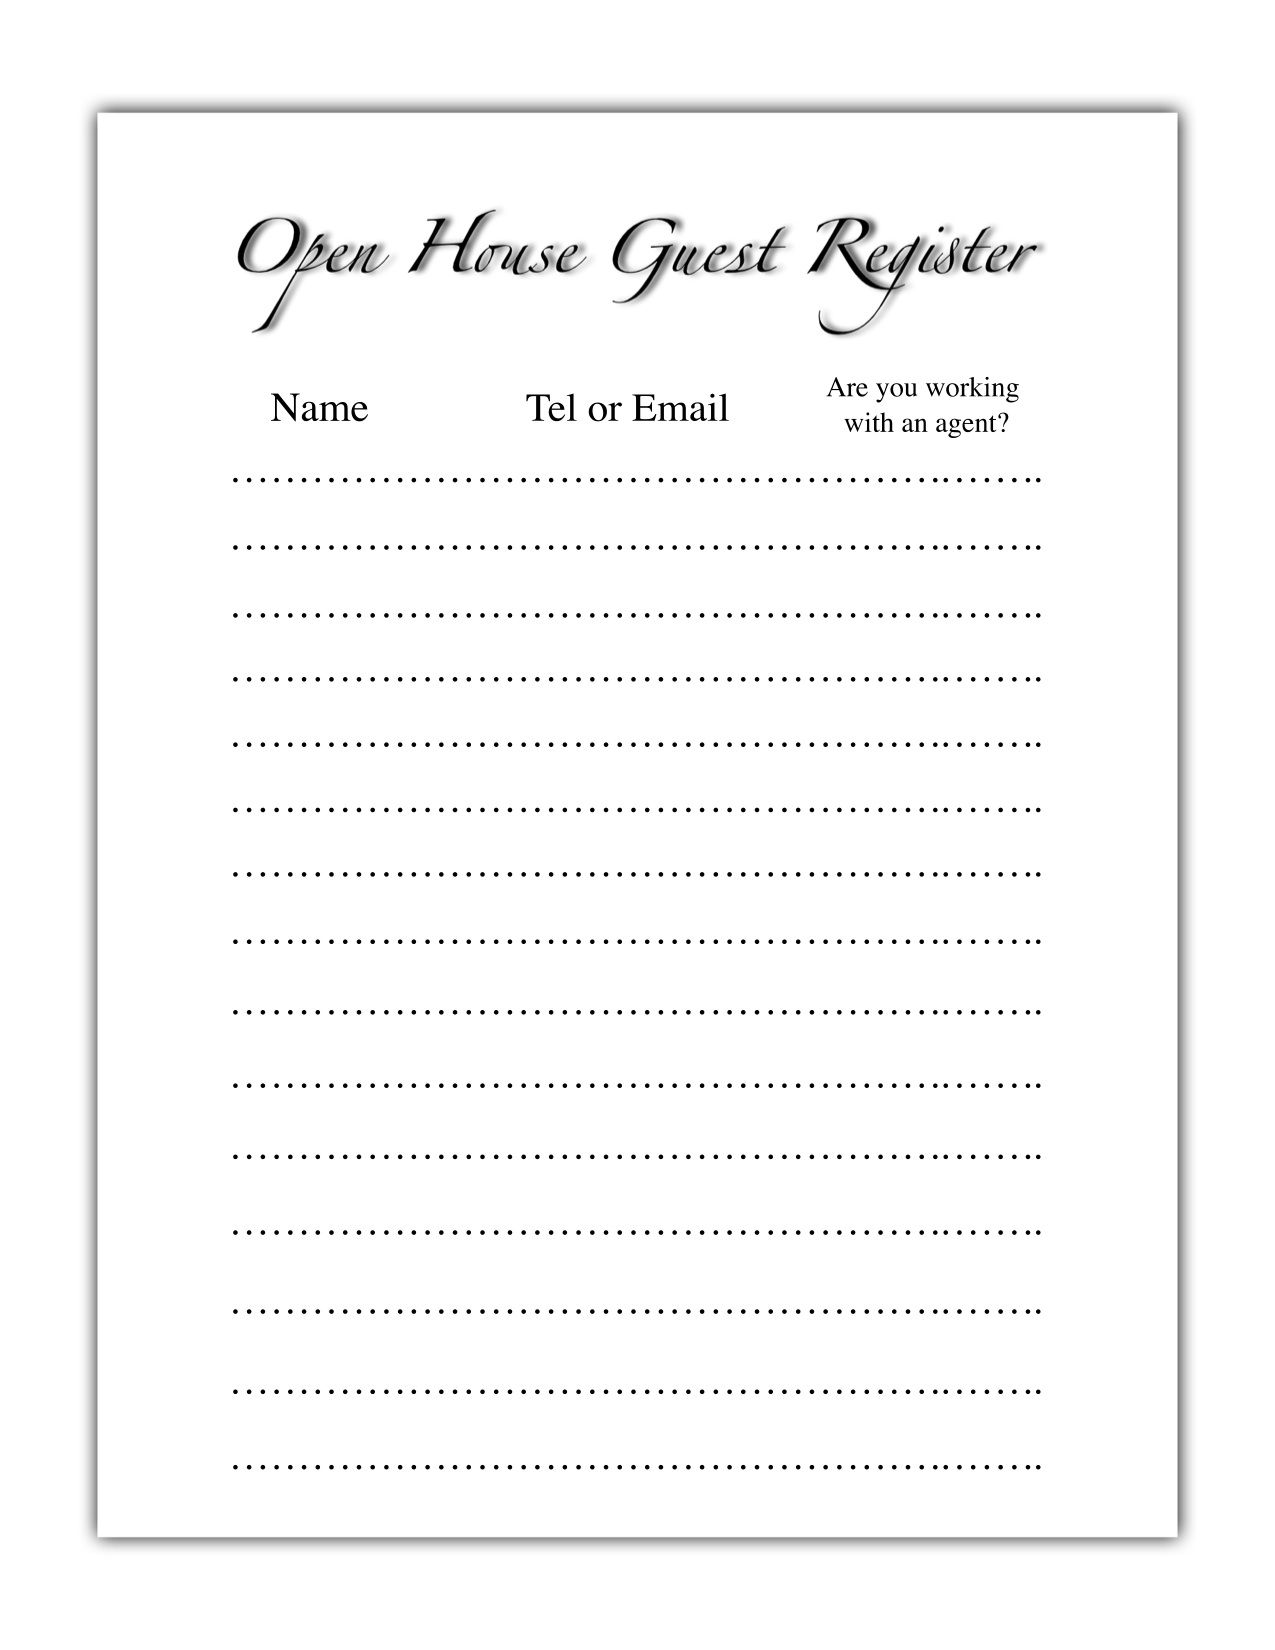 open house register template  Open House Guest Register | Real Estate | Pinterest | House guests ...